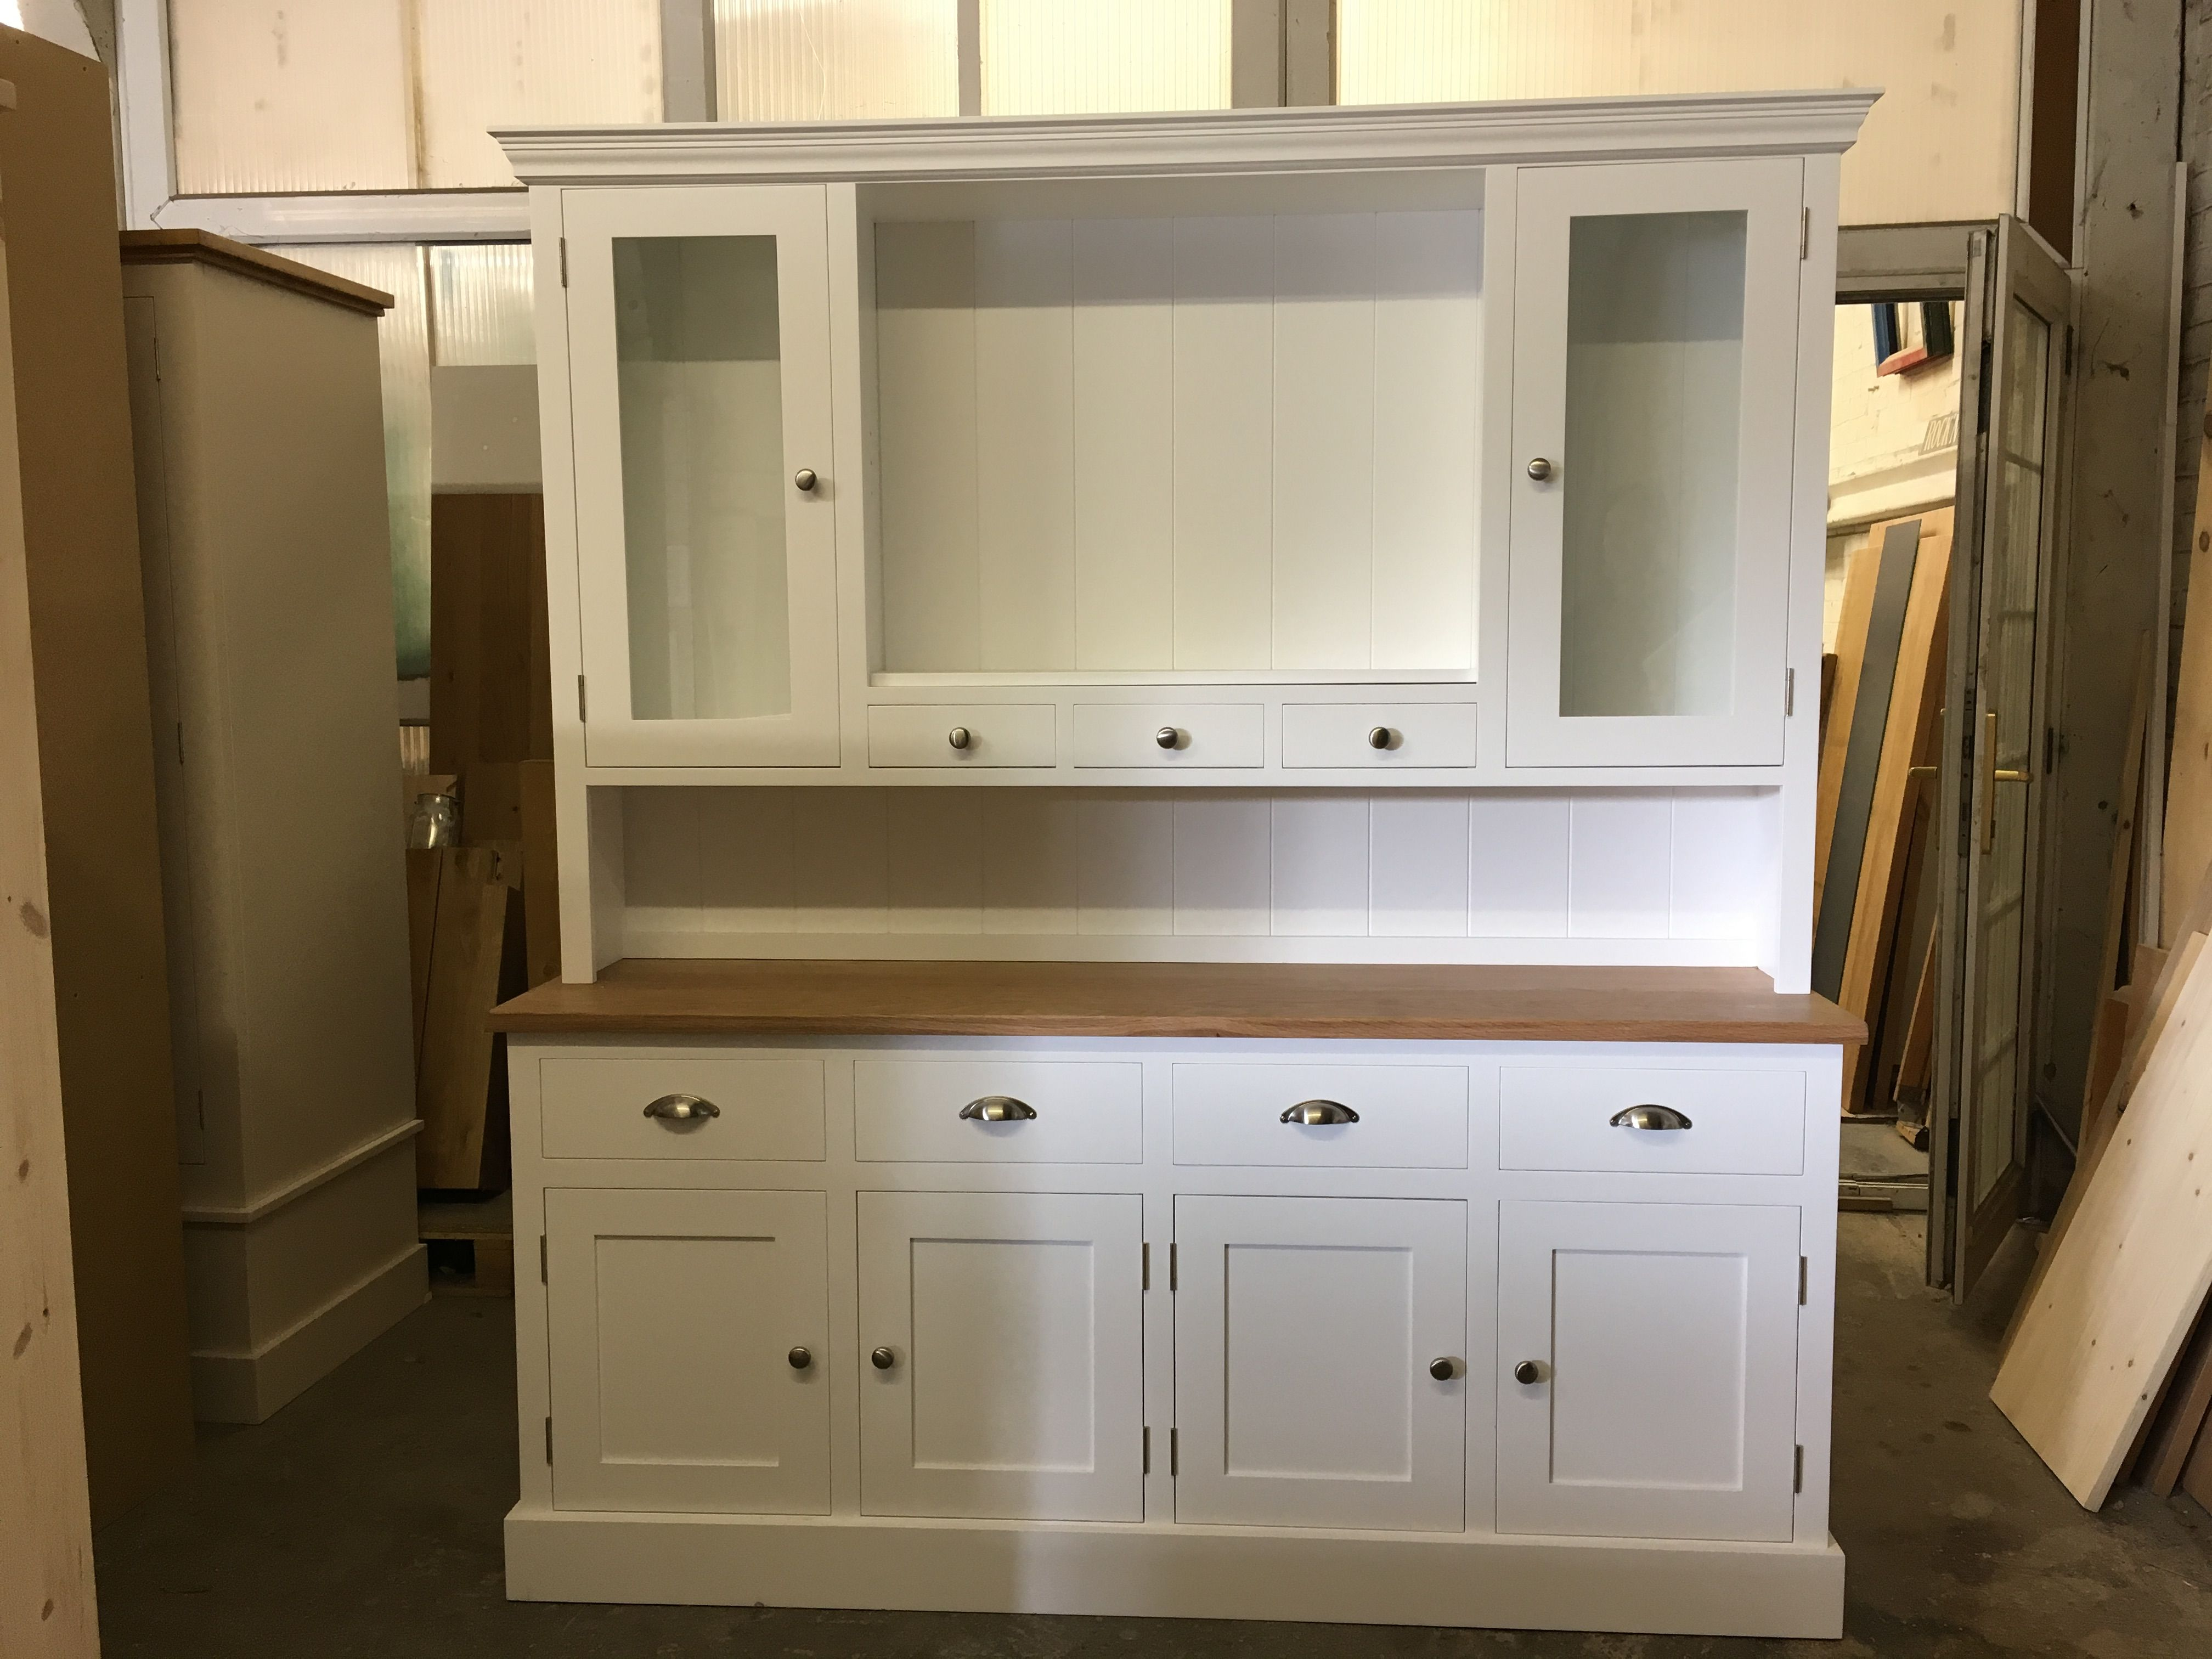 Another Glazed Dresser With An Oak Top From Cobwebs Furniture Company.  BESPOKE FURNITURE AT AFFORDABLE